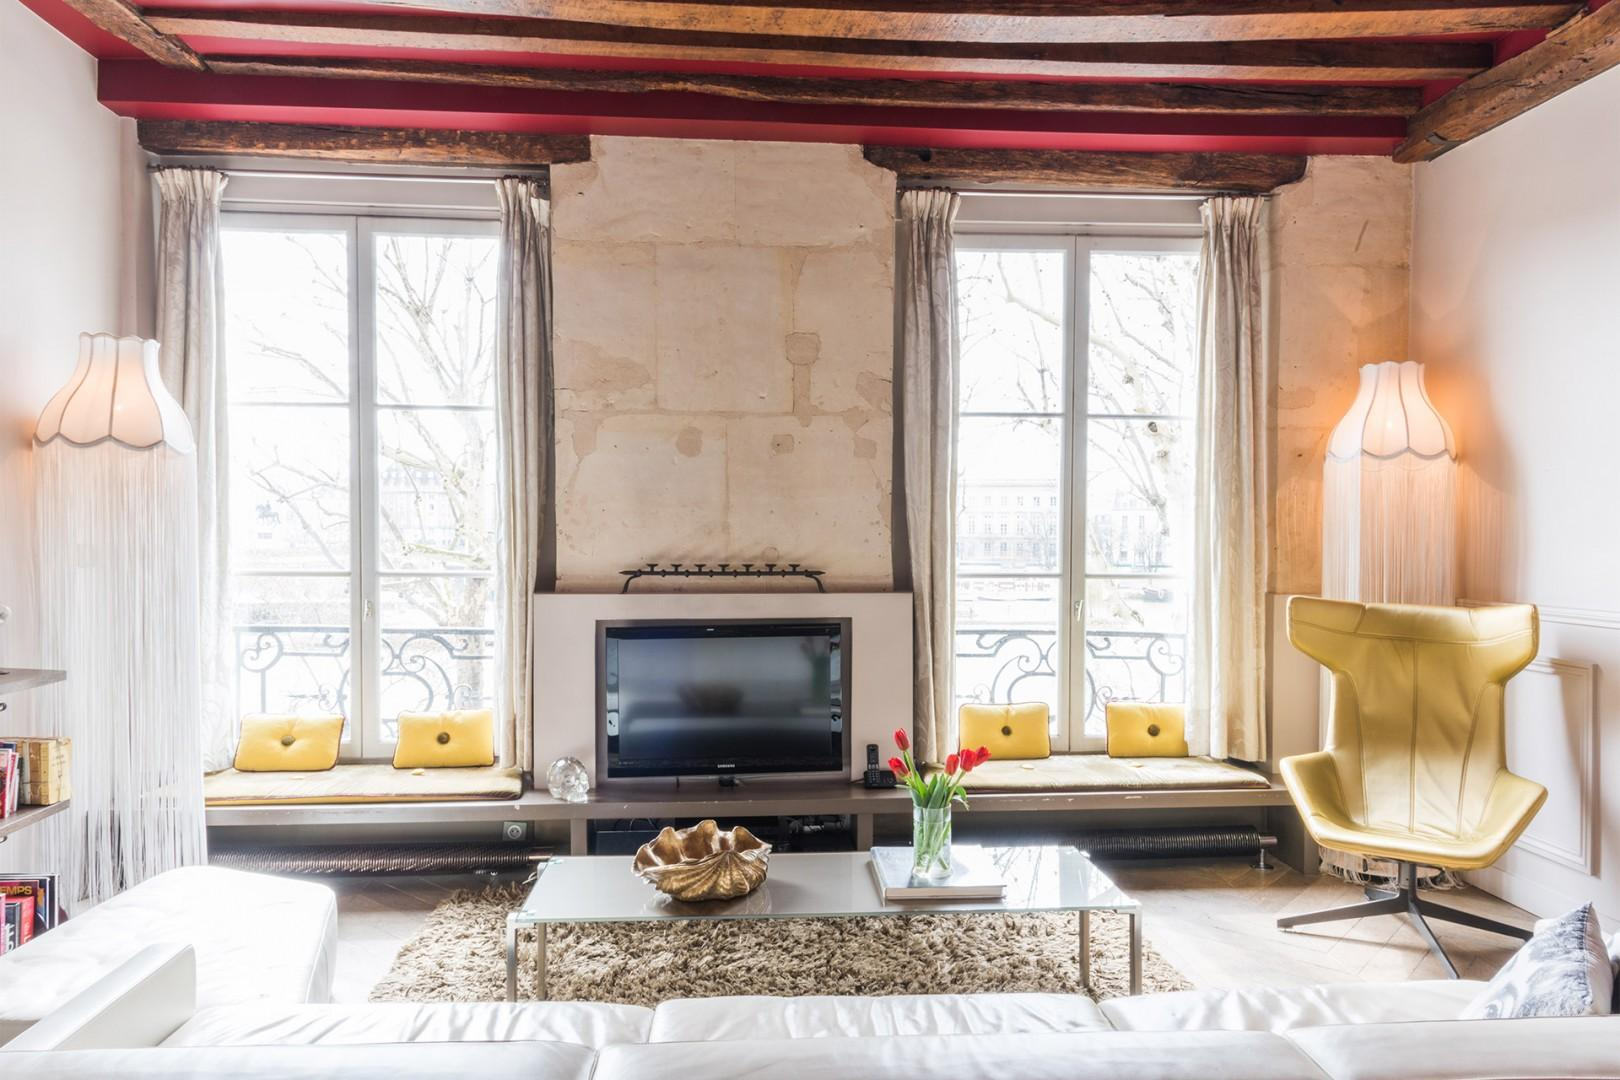 Welcome to the chic Ladoix vacation rental!